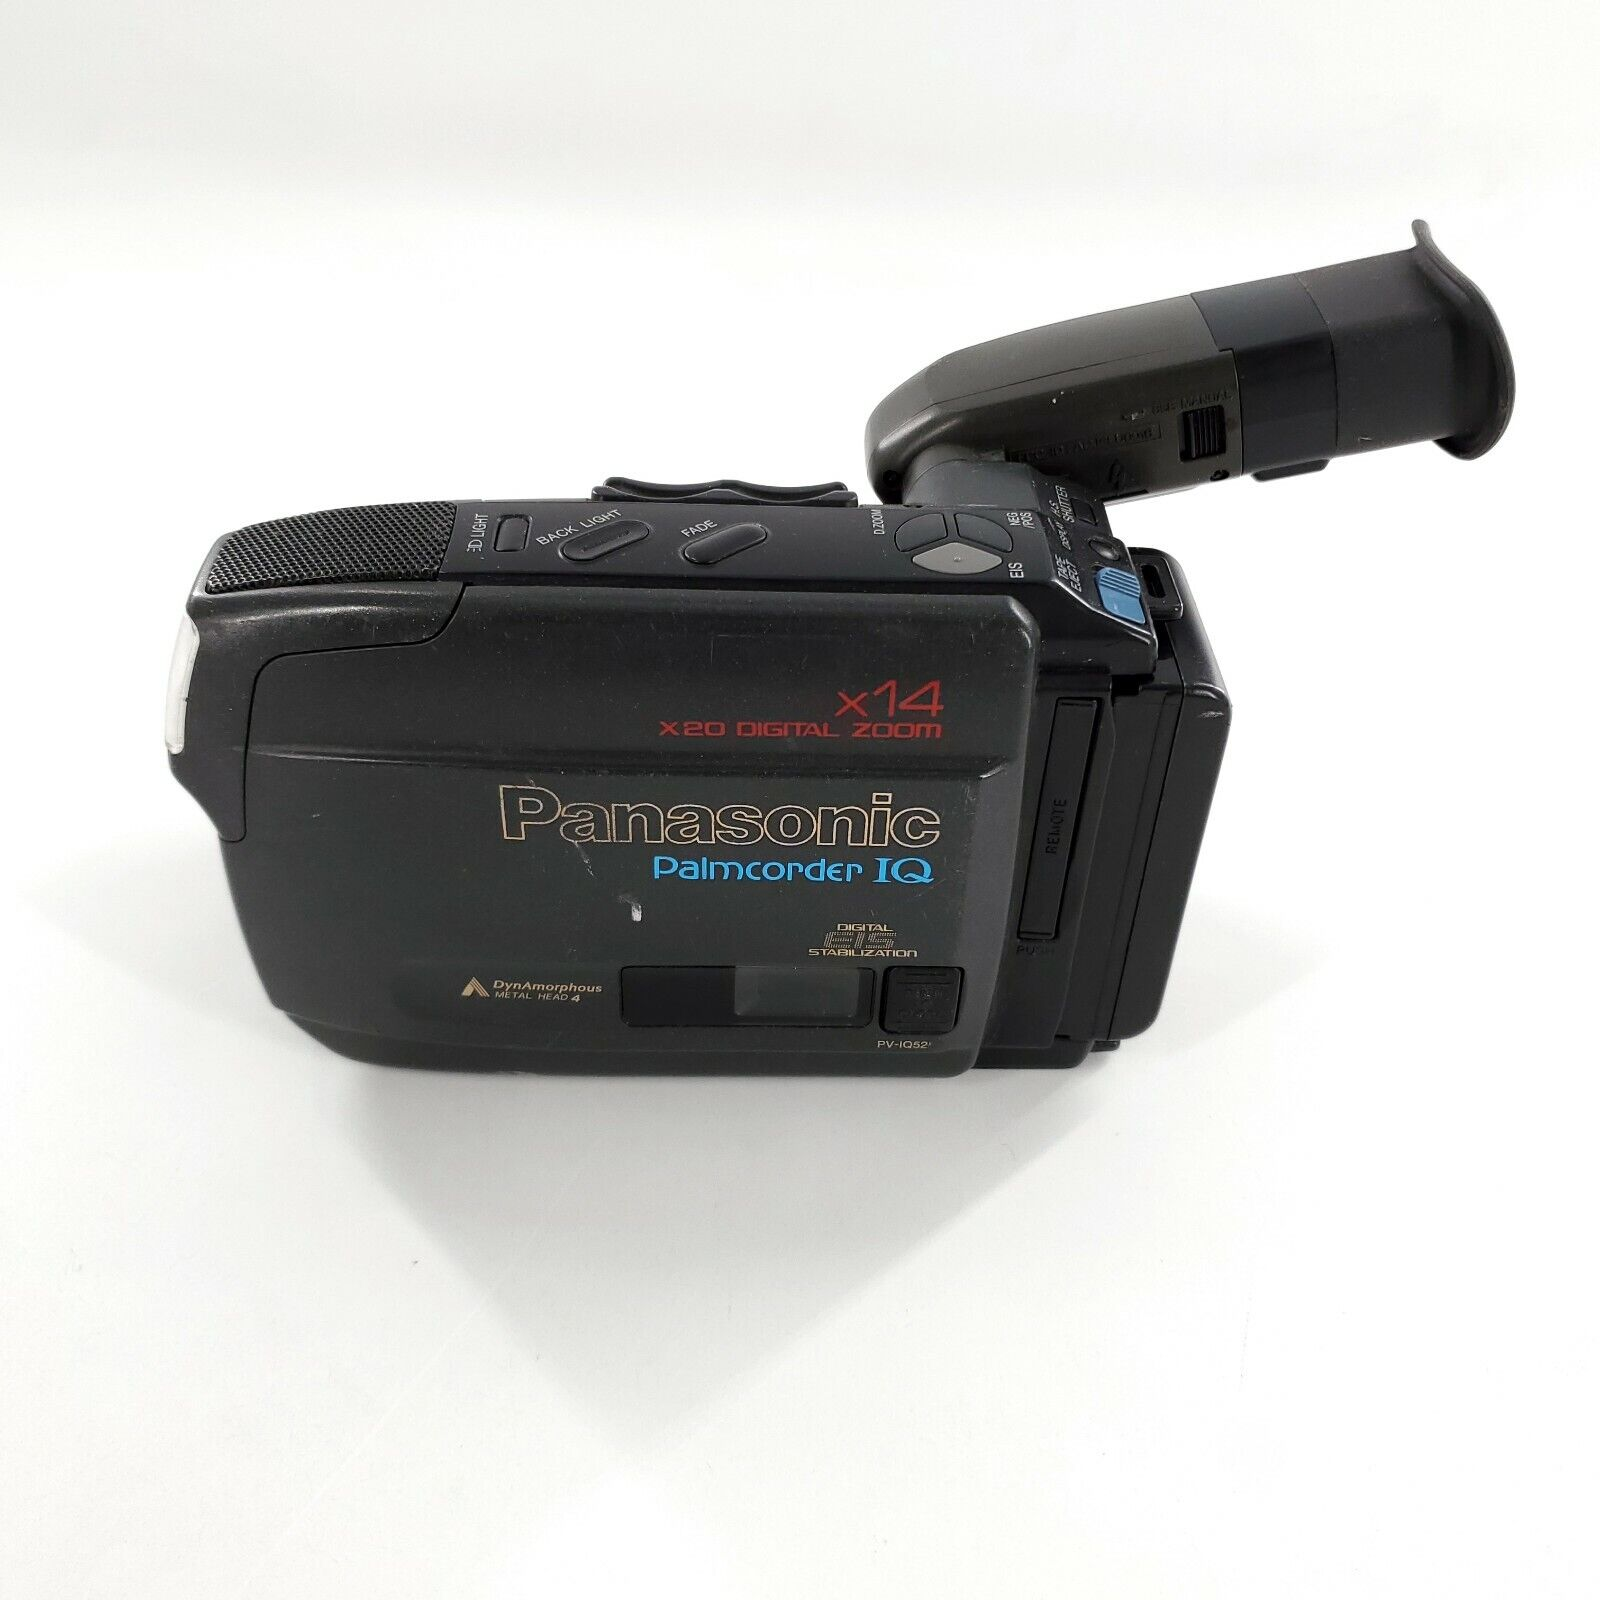 Panasonic Palmcorder IQ PV-IQ525D VHS-C Camcorder W/ Battery, Tested Works - $29.99